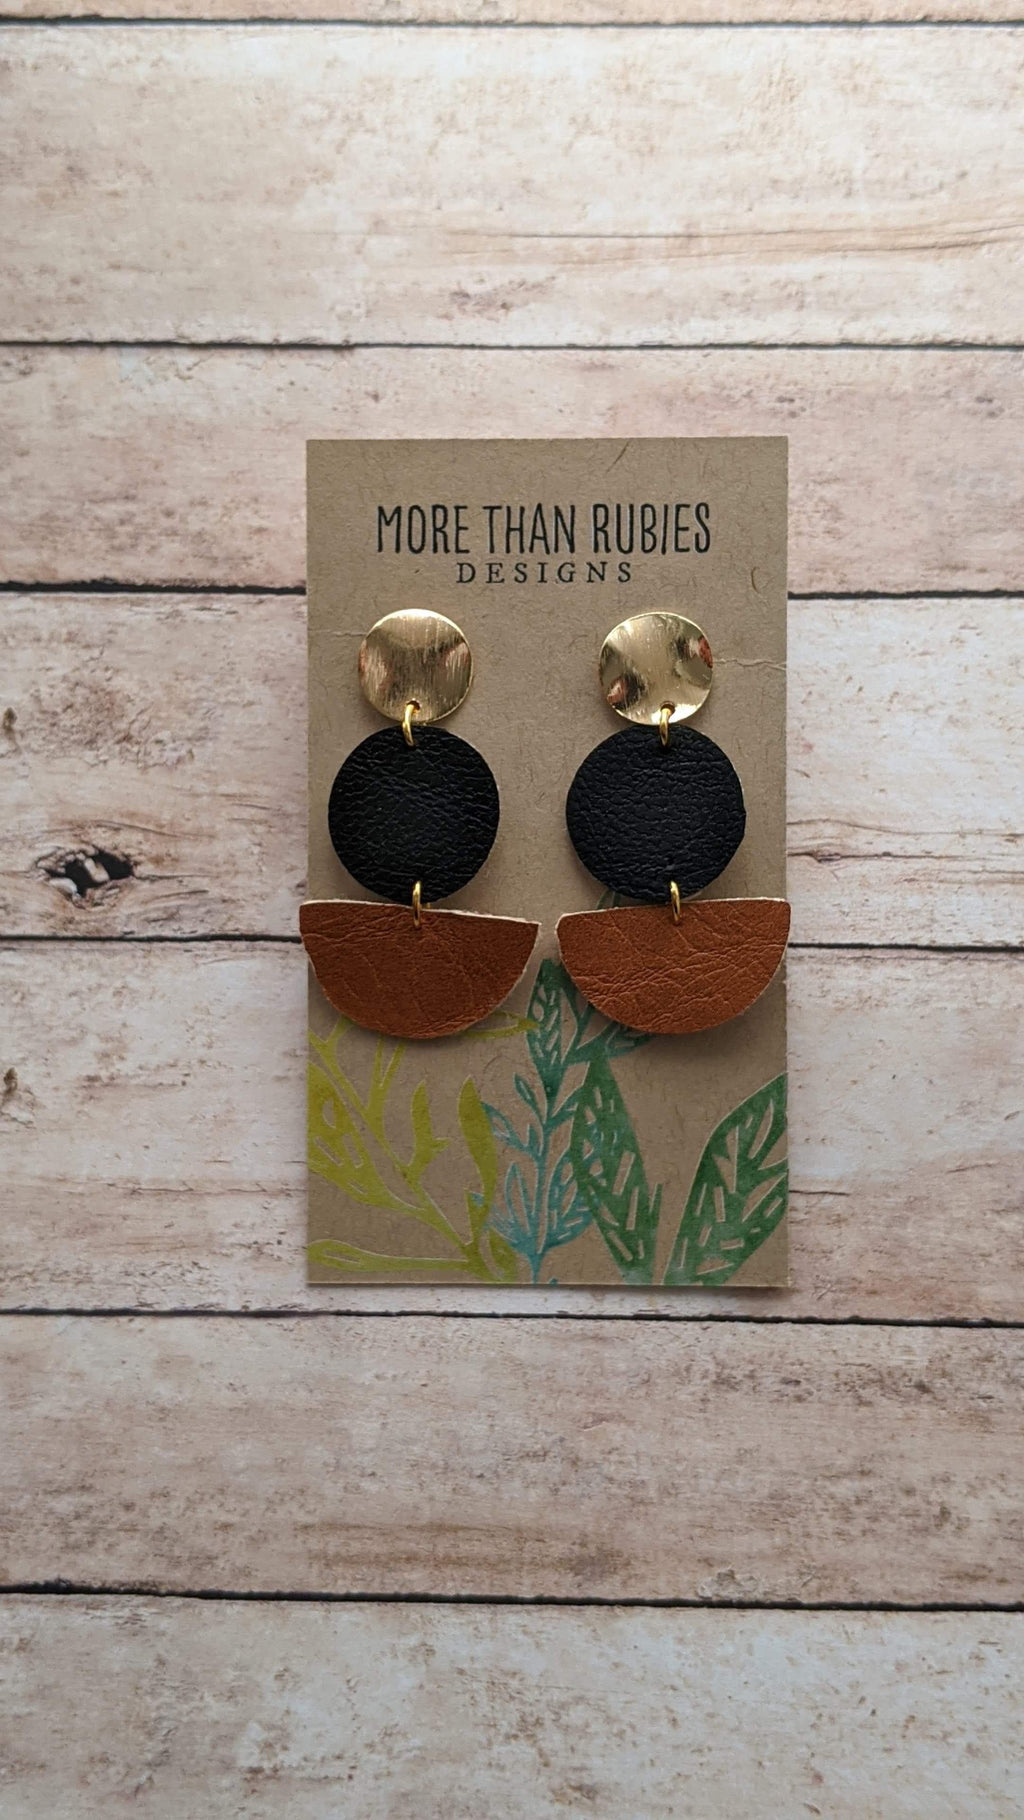 """Miley"" Faux Leather + Metal Drop Earrings - More Than Rubies Designs"